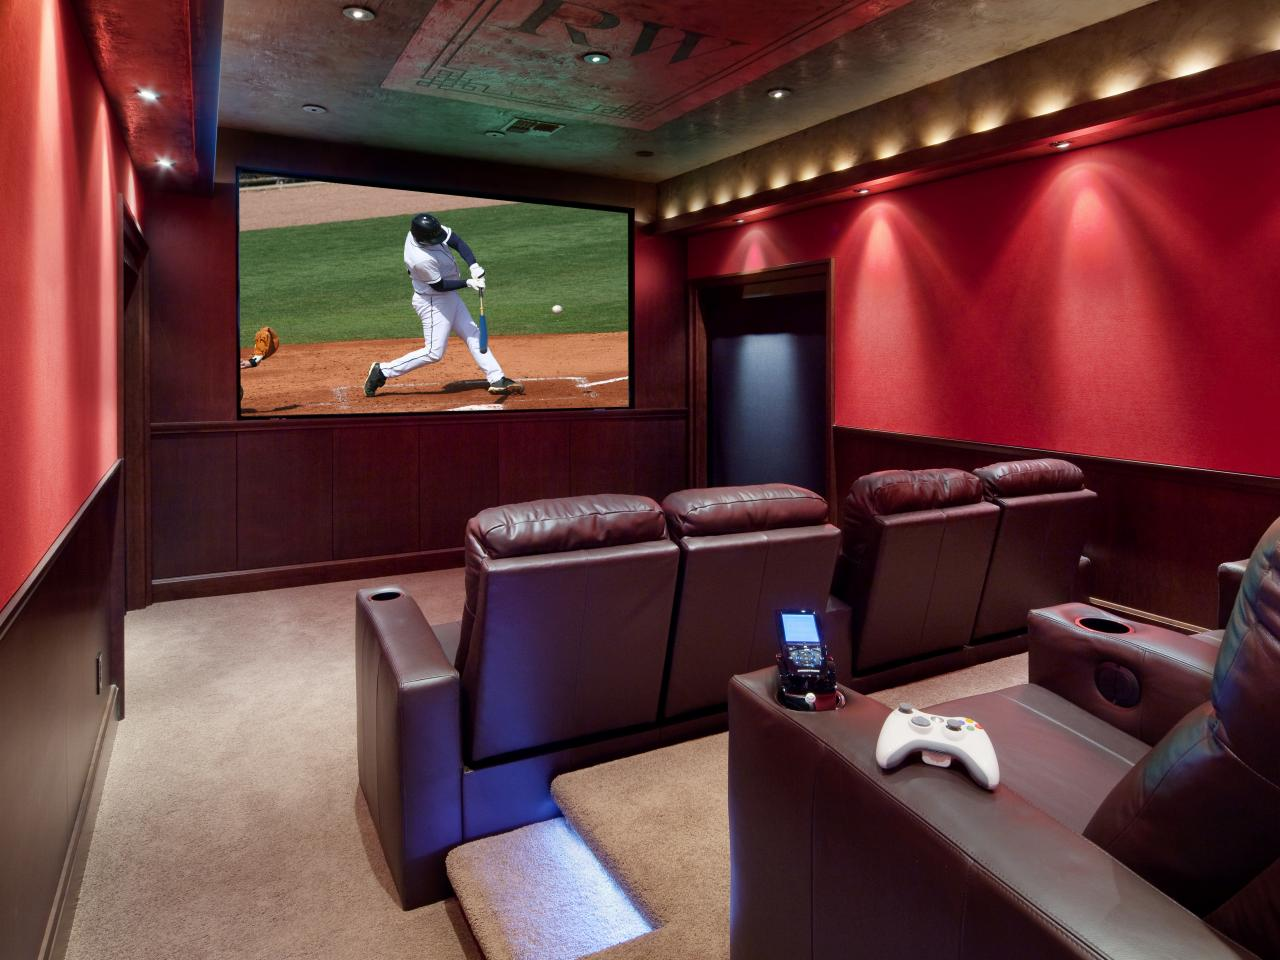 Home Theater Design Ideas: Pictures, Tips & Options  HGTV